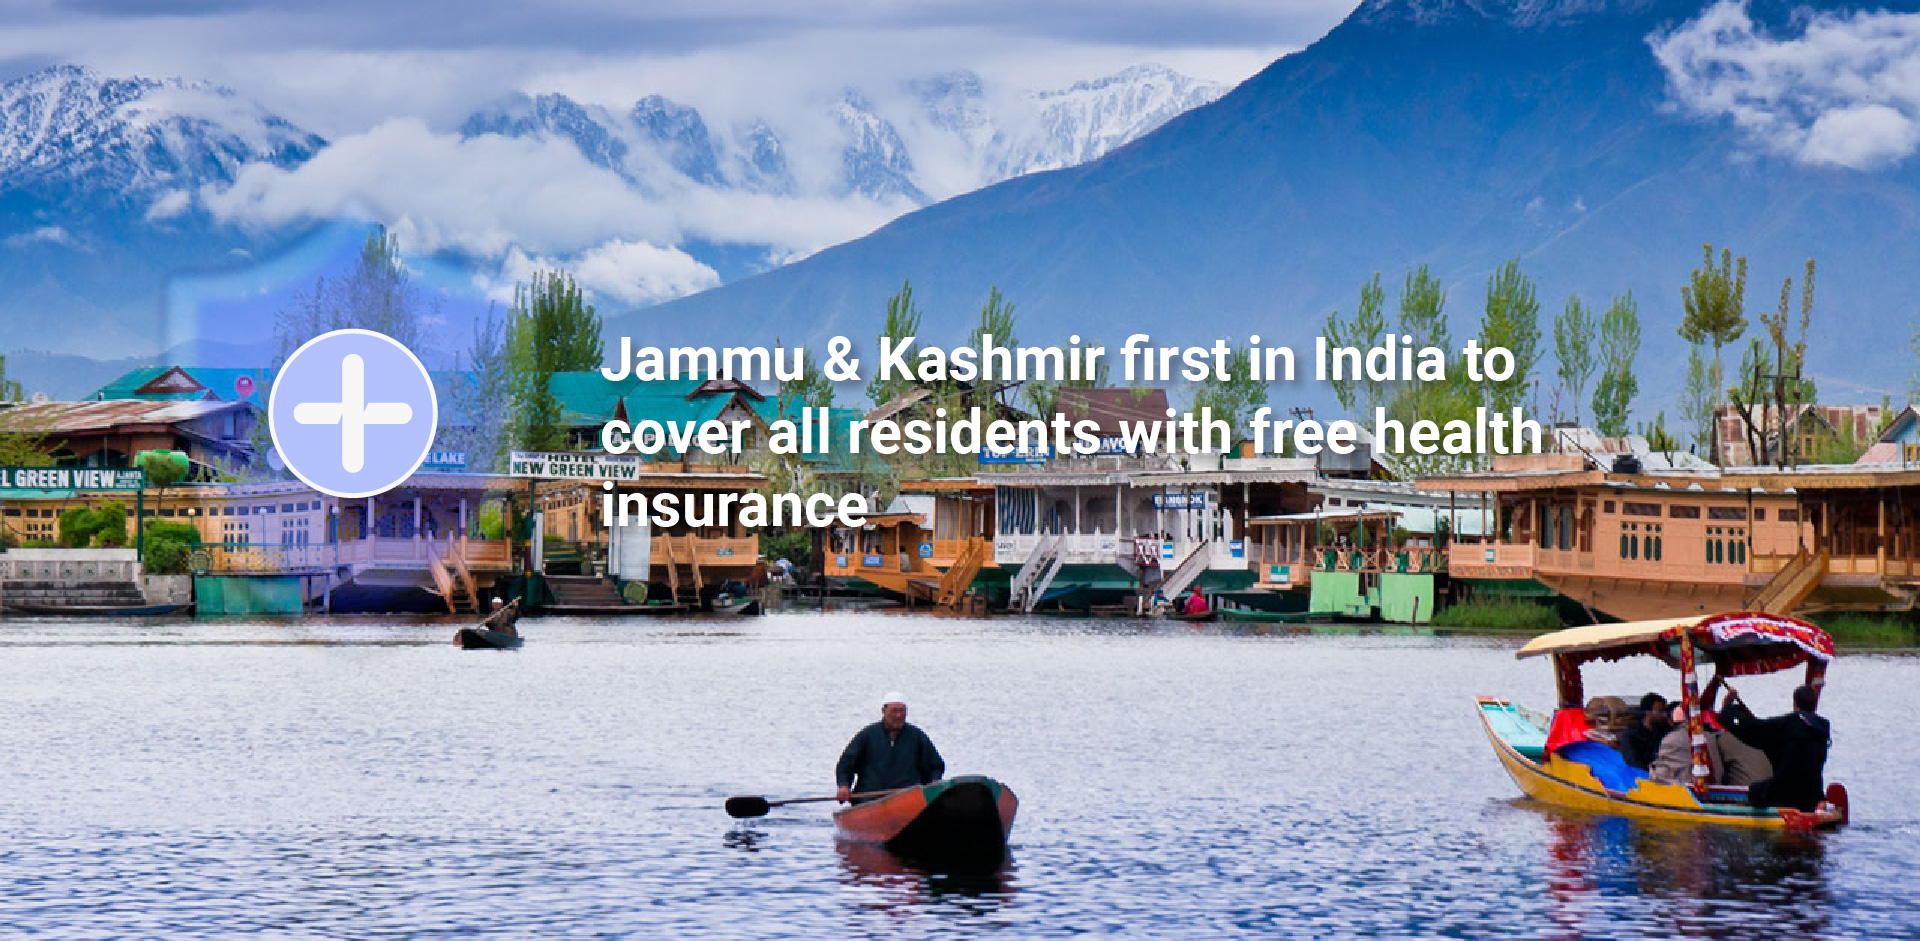 Jammu & Kashmir first in India to cover all residents with free health insurance